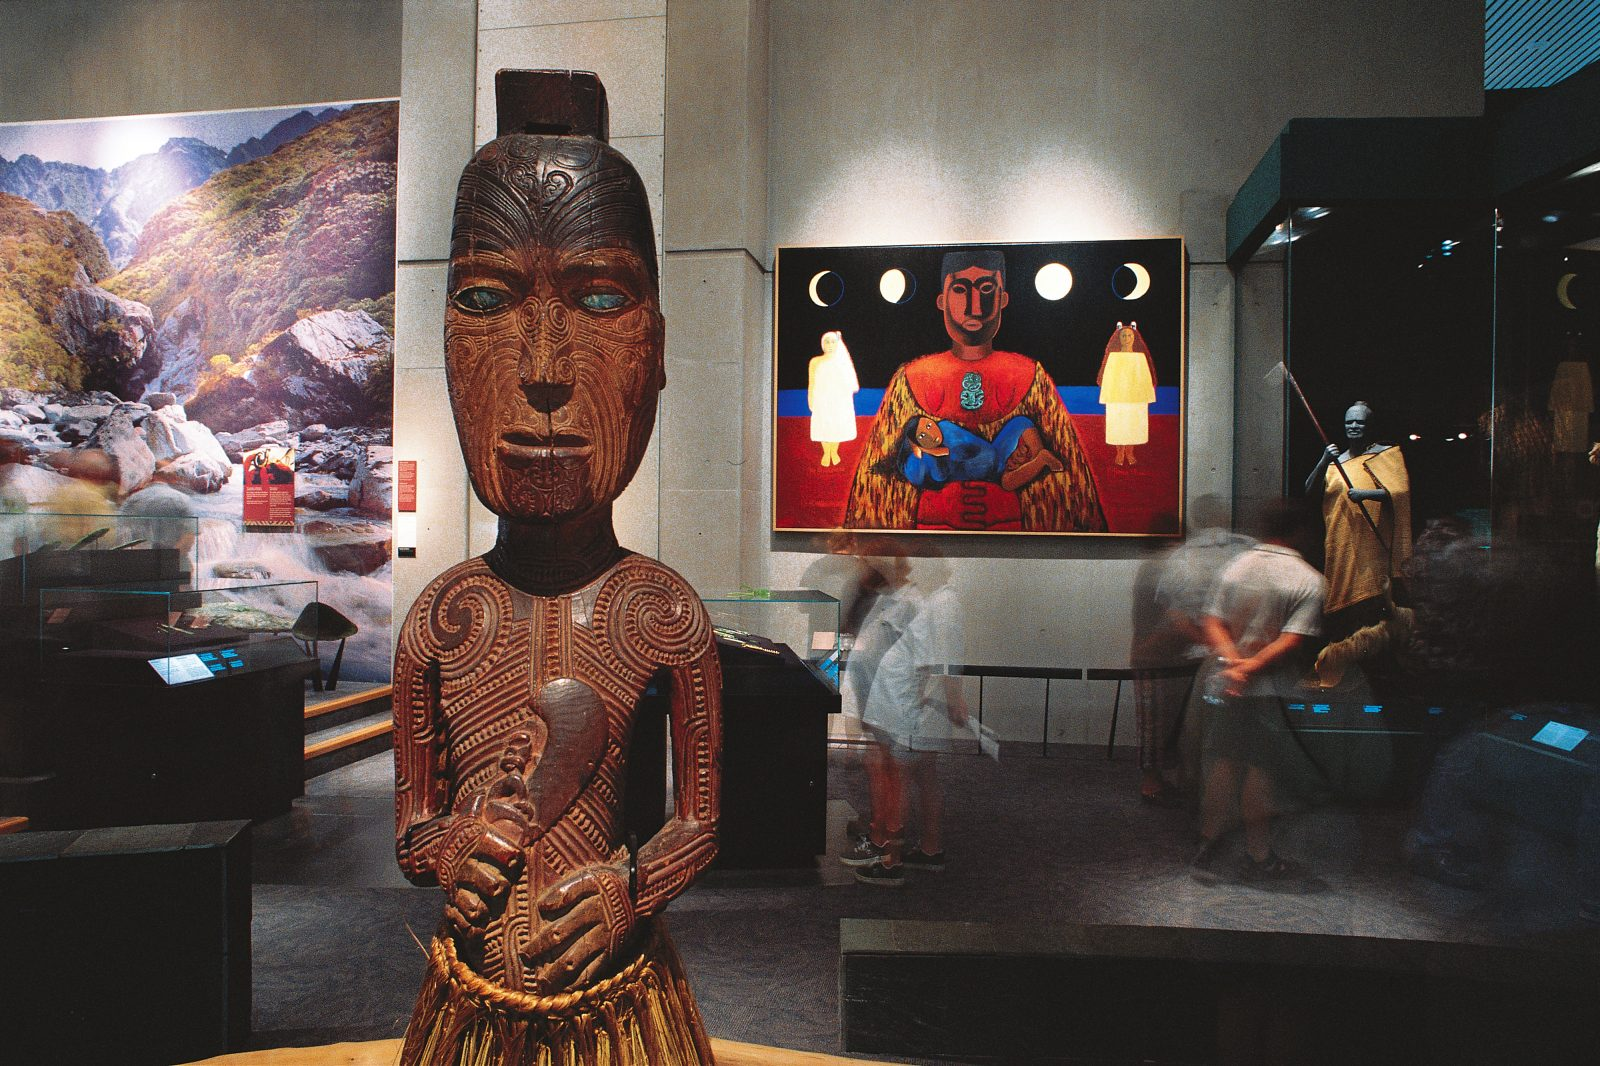 Images rich in significance greet the visitor in Mana Whenua, Te Papa's display of traditional Maori culture. A carved ancestral figure, a painting symbolising the protection of pregnant women, a cloaked chief and a photomural of the Arahura River, source of greenstone, are among the offerings.